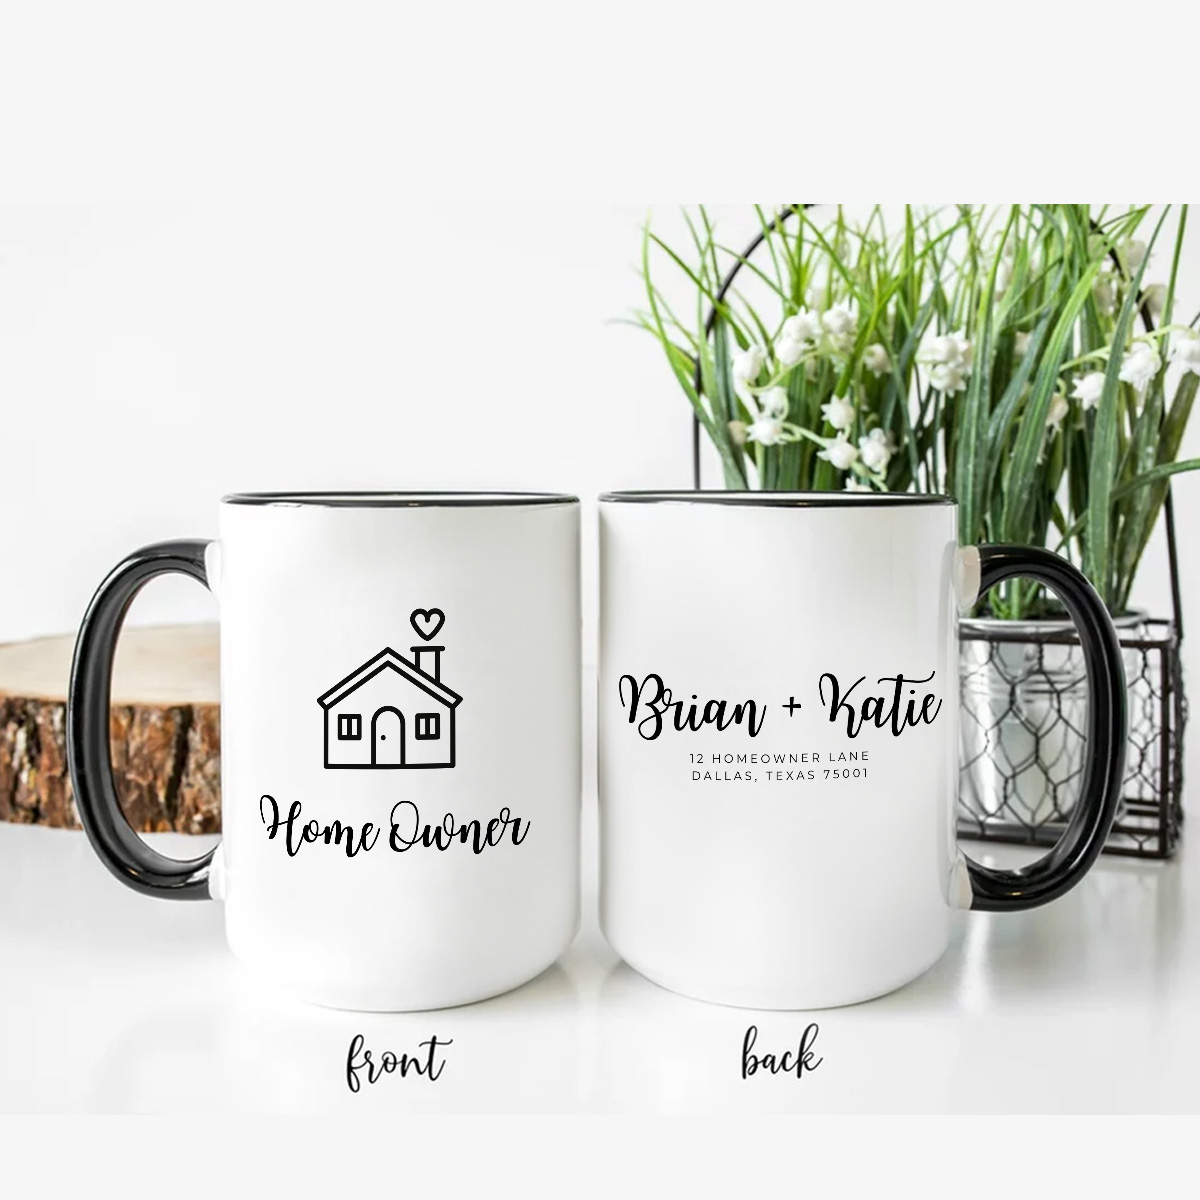 Two White 15oz Mugs With Black Handles Personalized for a new Homeowner Couple